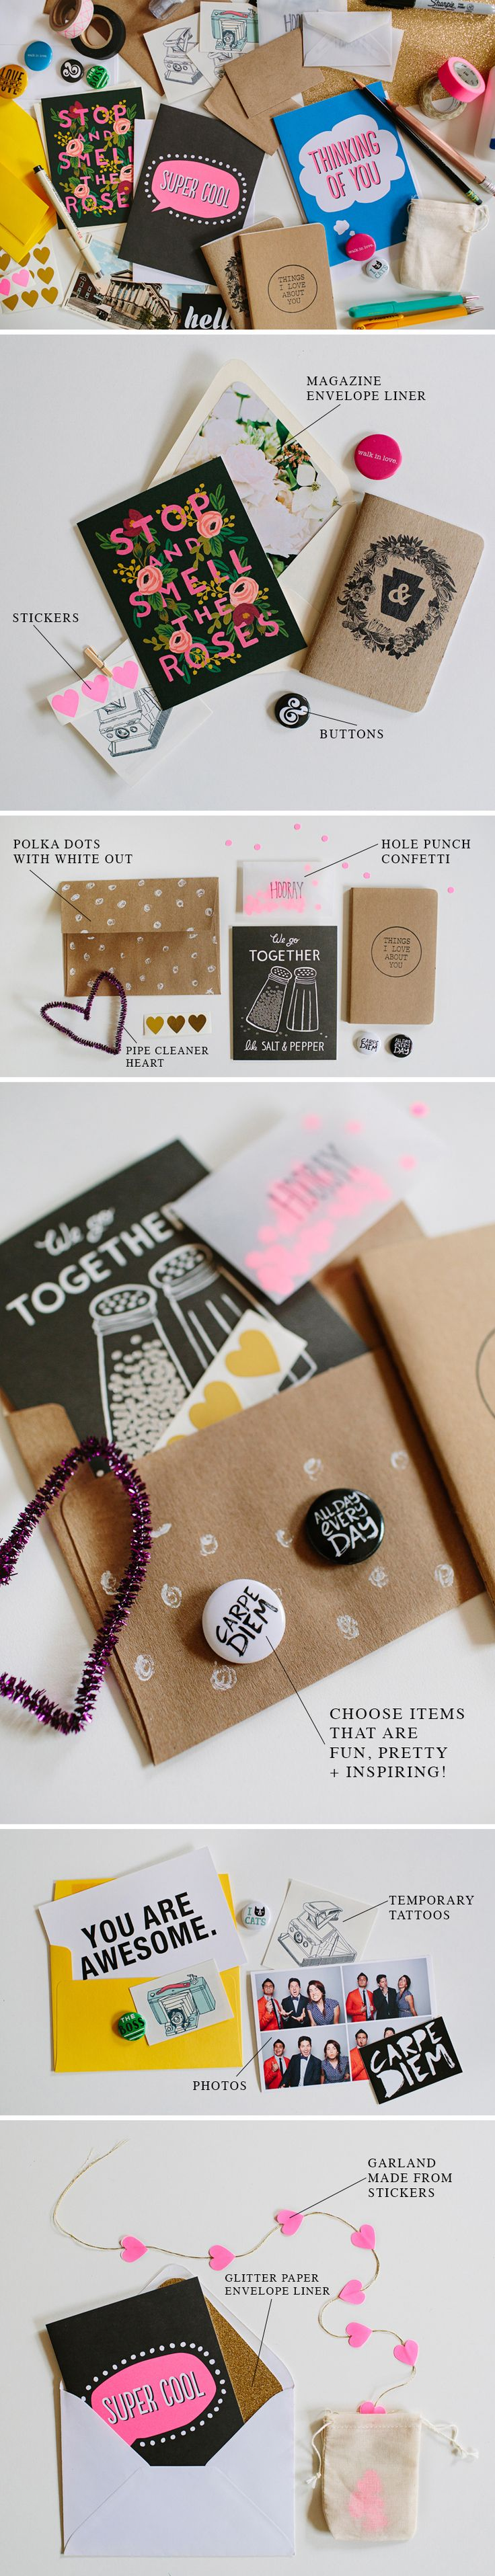 Send some awesome snail mail | walk in love. How pretty is all this?!